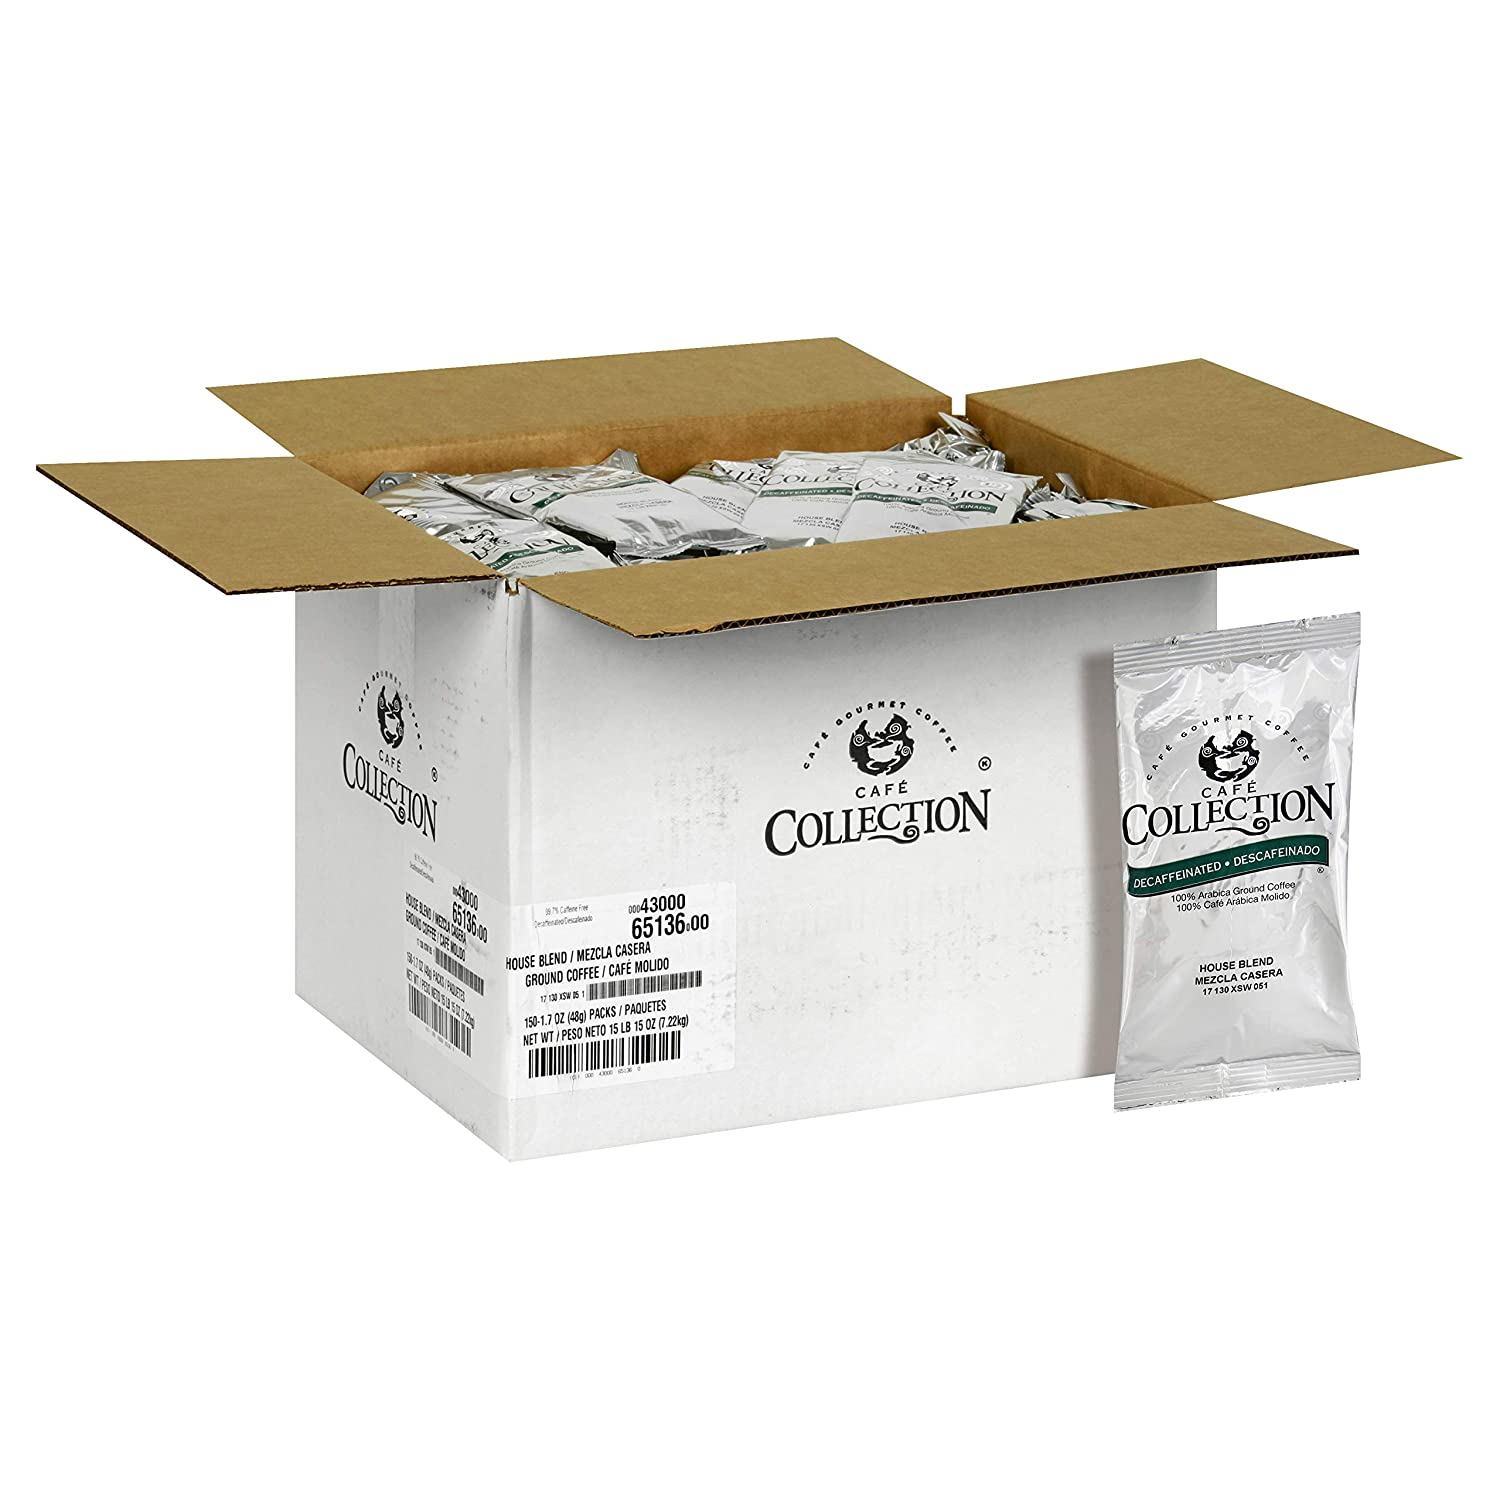 Amazon.com : Cafe Collection Ground Coffee, House Blend, 1.7 Ounce (Pack of 150) : Grocery & Gourmet Food